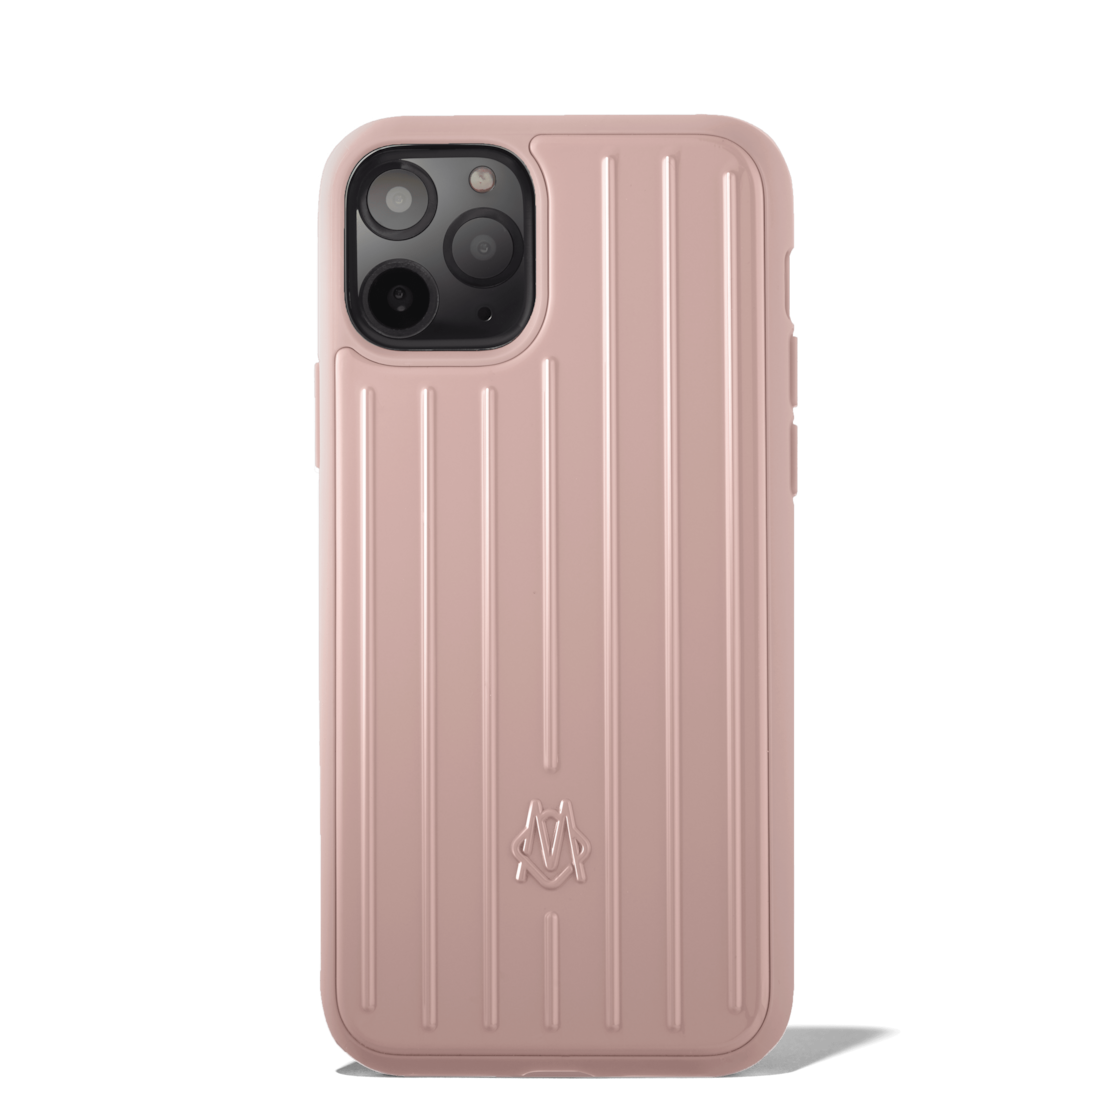 Polycarbonate Desert Rose Pink Groove Case for iPhone 11 Pro